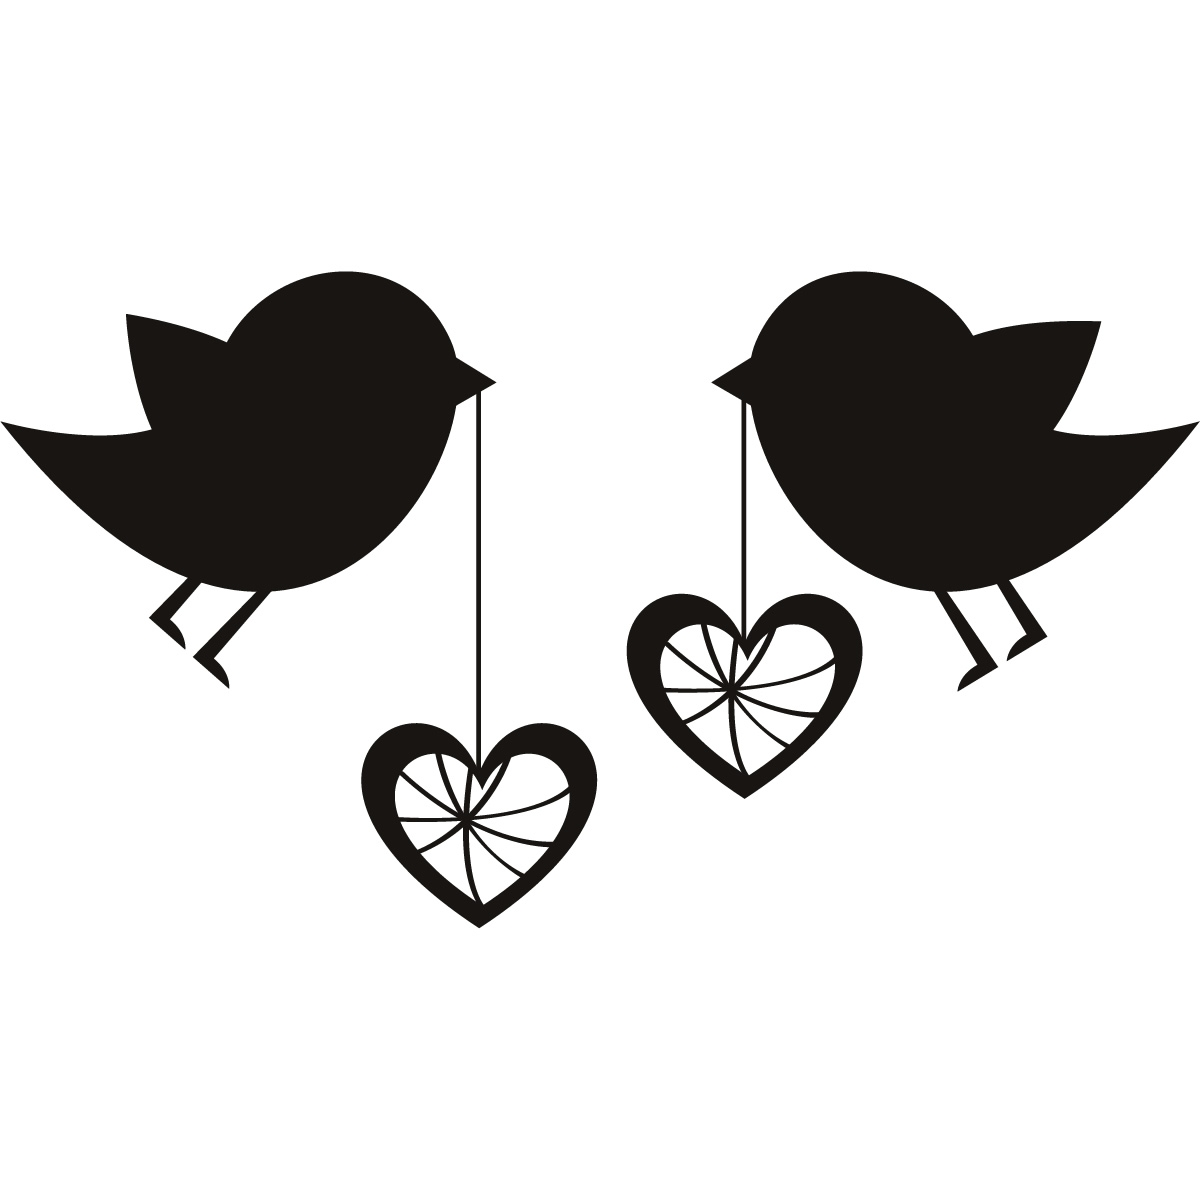 love birds drawing images at getdrawings com free for personal use rh getdrawings com love bird clip art silhouette love bird clip art silhouette